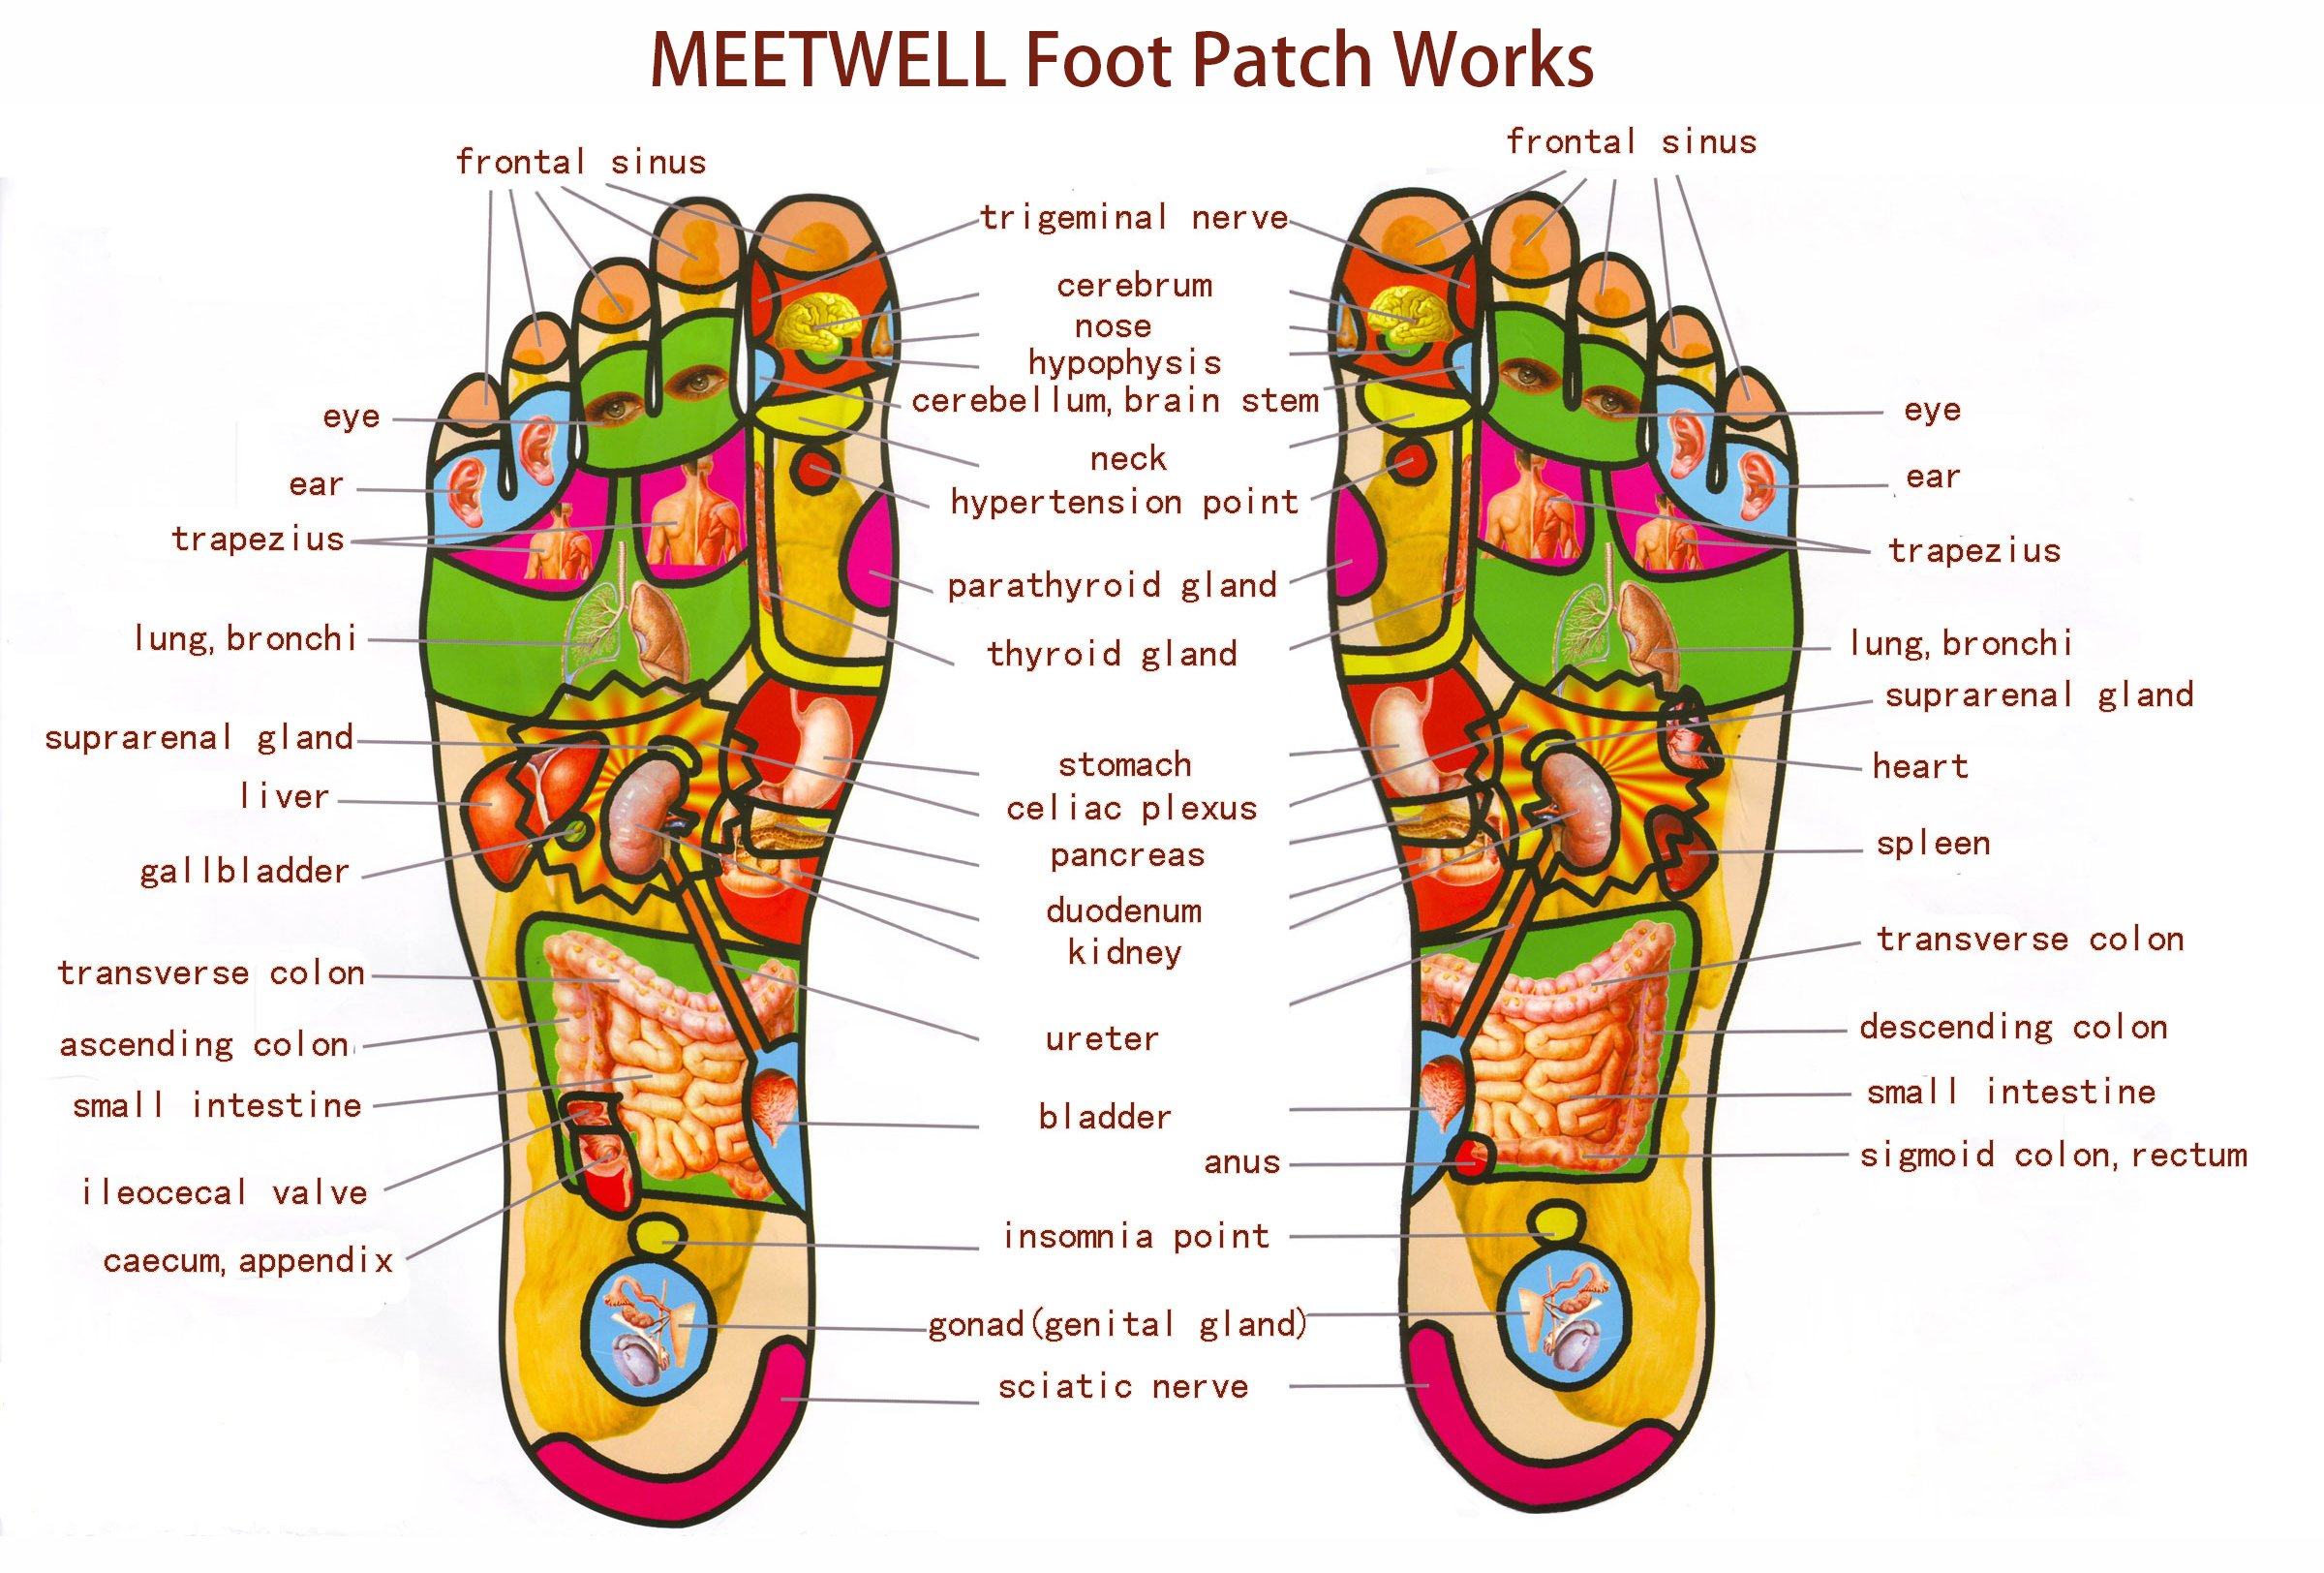 MEETWELL Foot Patch, Body Relief and Tired Foot Relief Pads, Herbal Artemisia Argyi Powder and Essential Oil, Bamboo Vinegar Essence Foot Care Pads, 10 Pieces (5 Pairs)